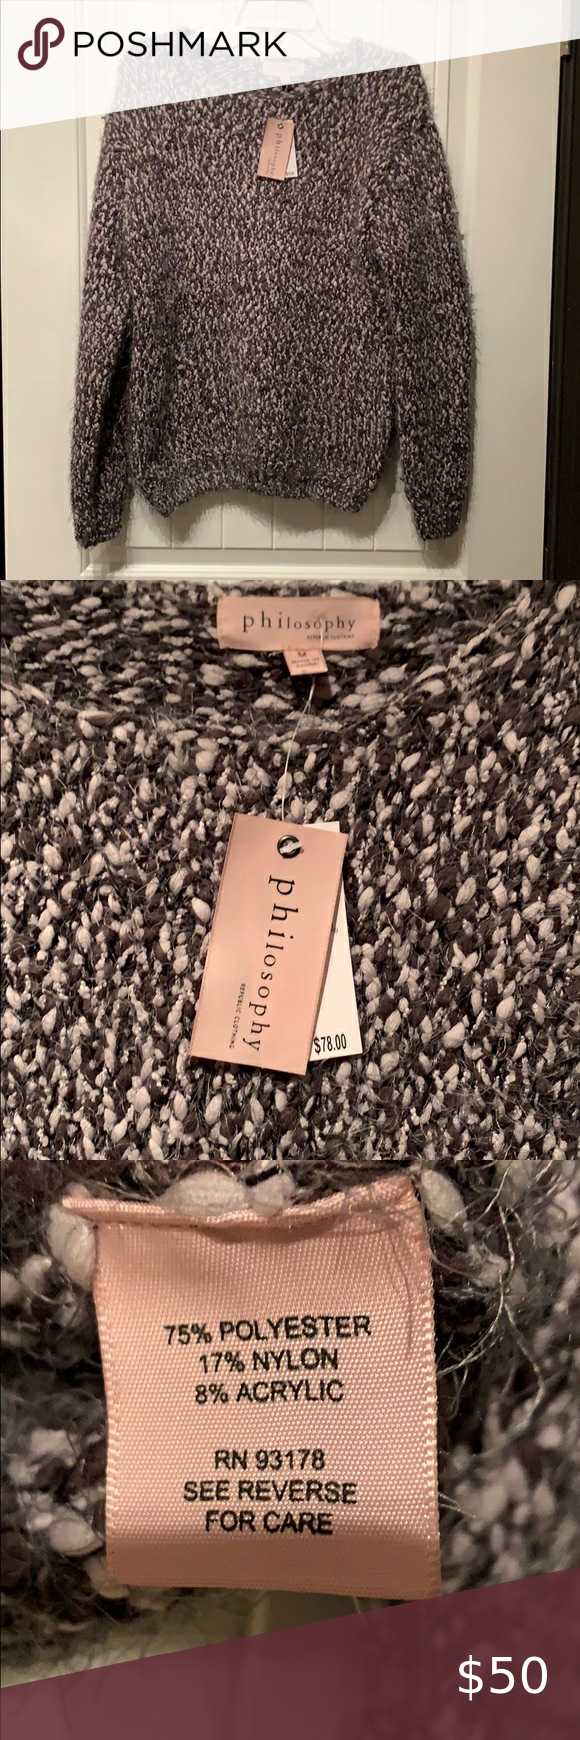 Copy Philosophy Republic Clothing Sweater Beautiful Grey Combo Philosophy Sweater Brand New With Tags Si Sweater Outfits Sweater Brands Sweaters For Women